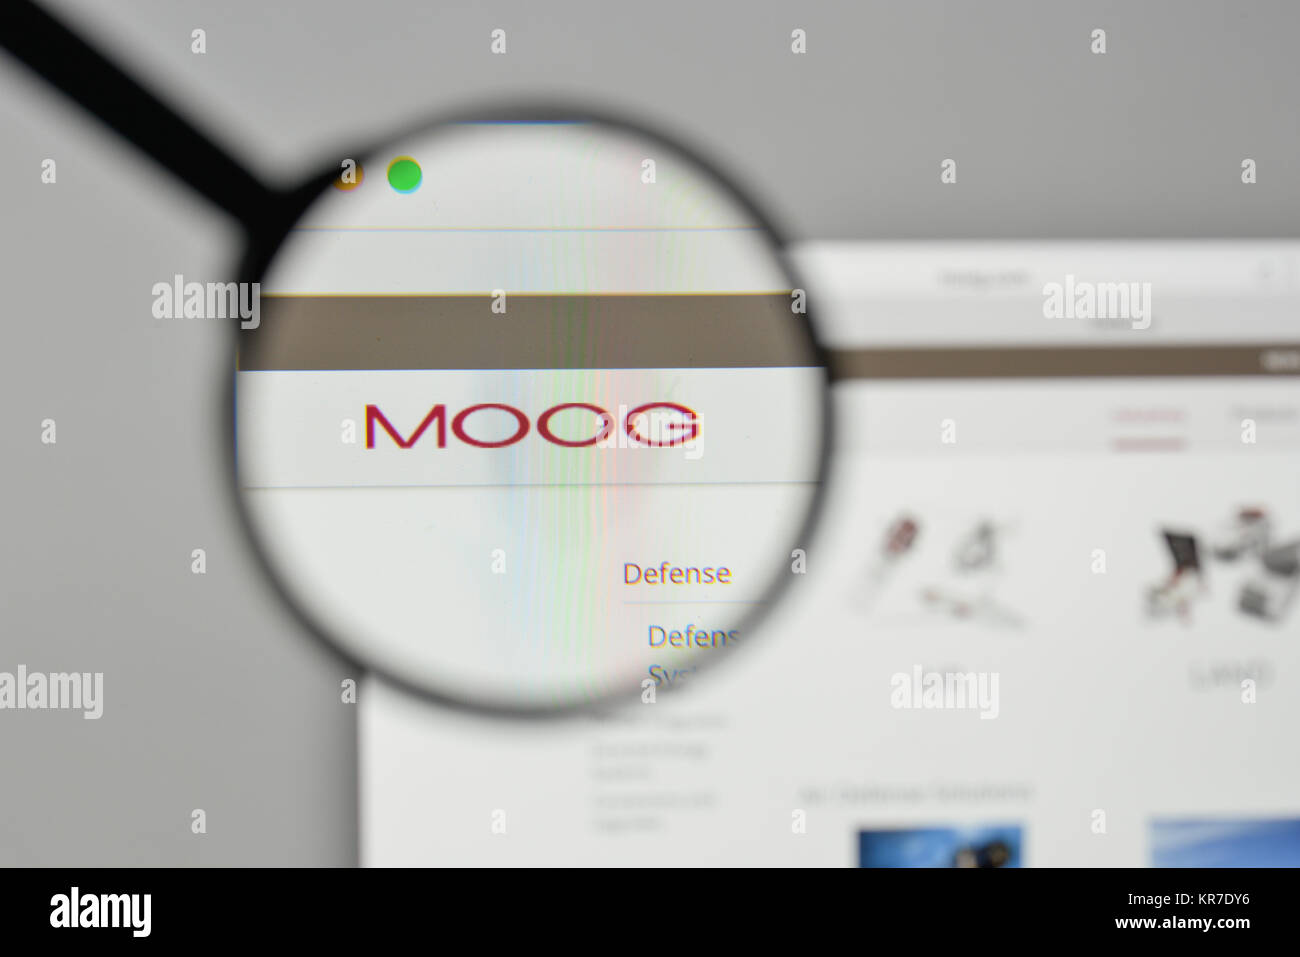 Milan, Italy - November 1, 2017: Moog logo on the website homepage. - Stock Image